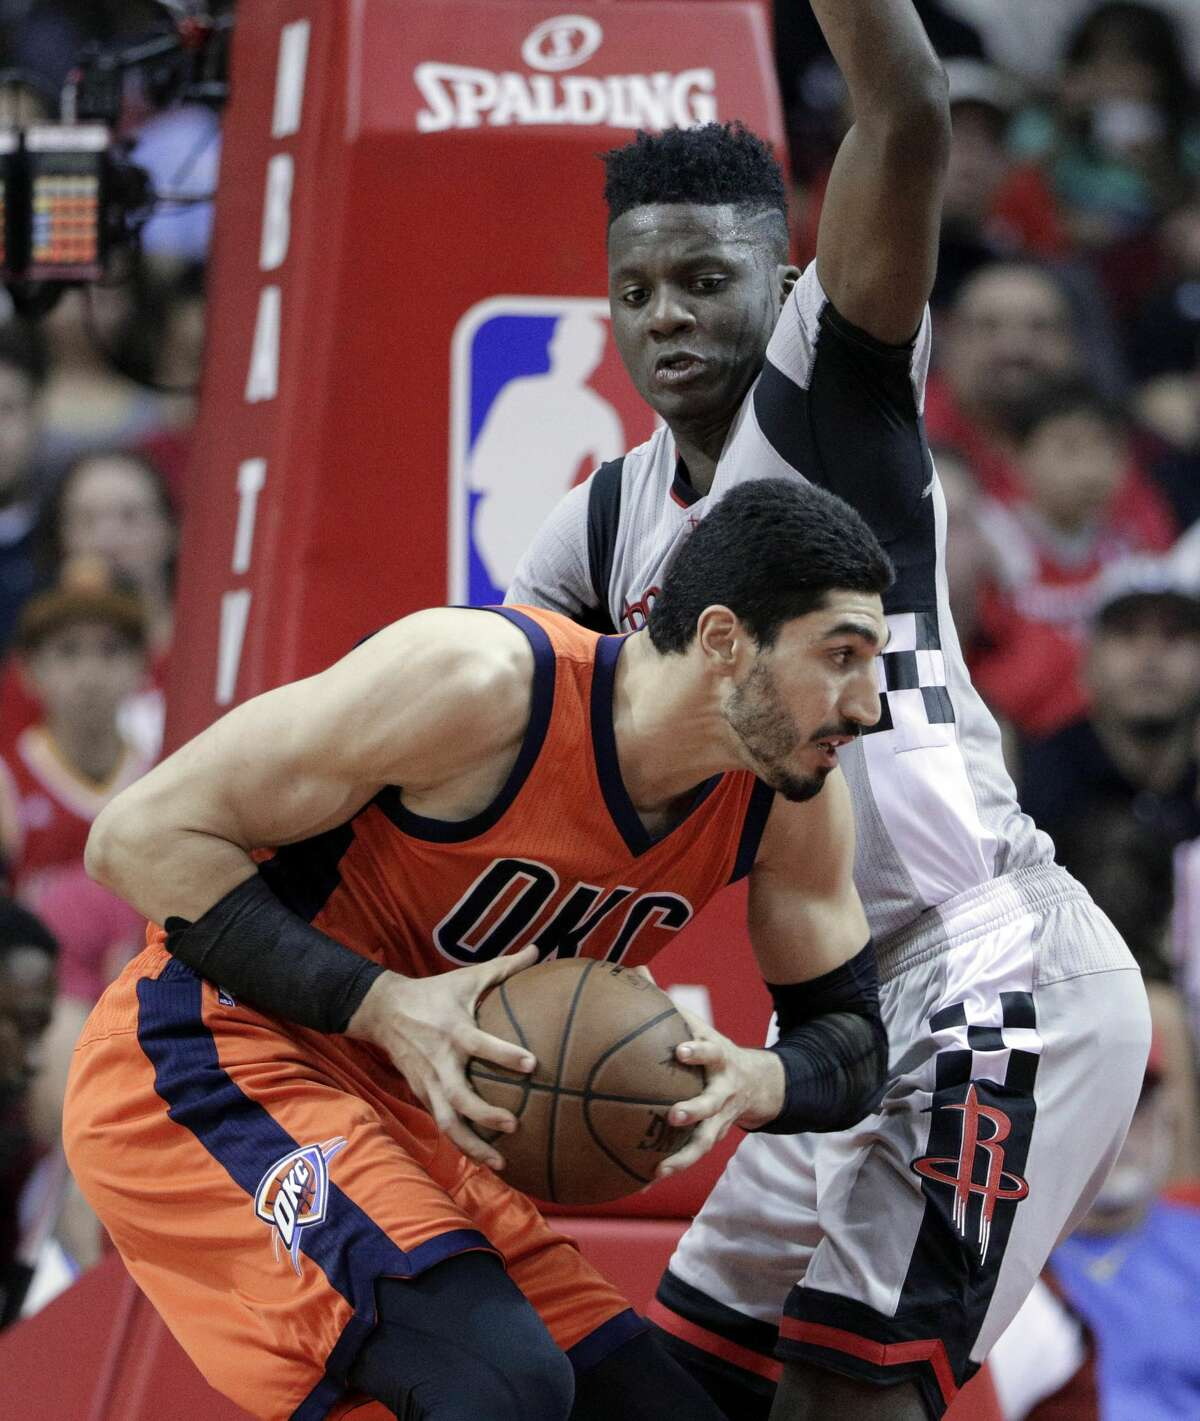 Oklahoma City Thunder's Enes Kanter (11) drives to the hoop under pressure from Houston Rockets' Clint Capela (15) in the second half of an NBA basketball game in Houston, Sunday, March 26, 2017. (AP Photo/Michael Wyke)